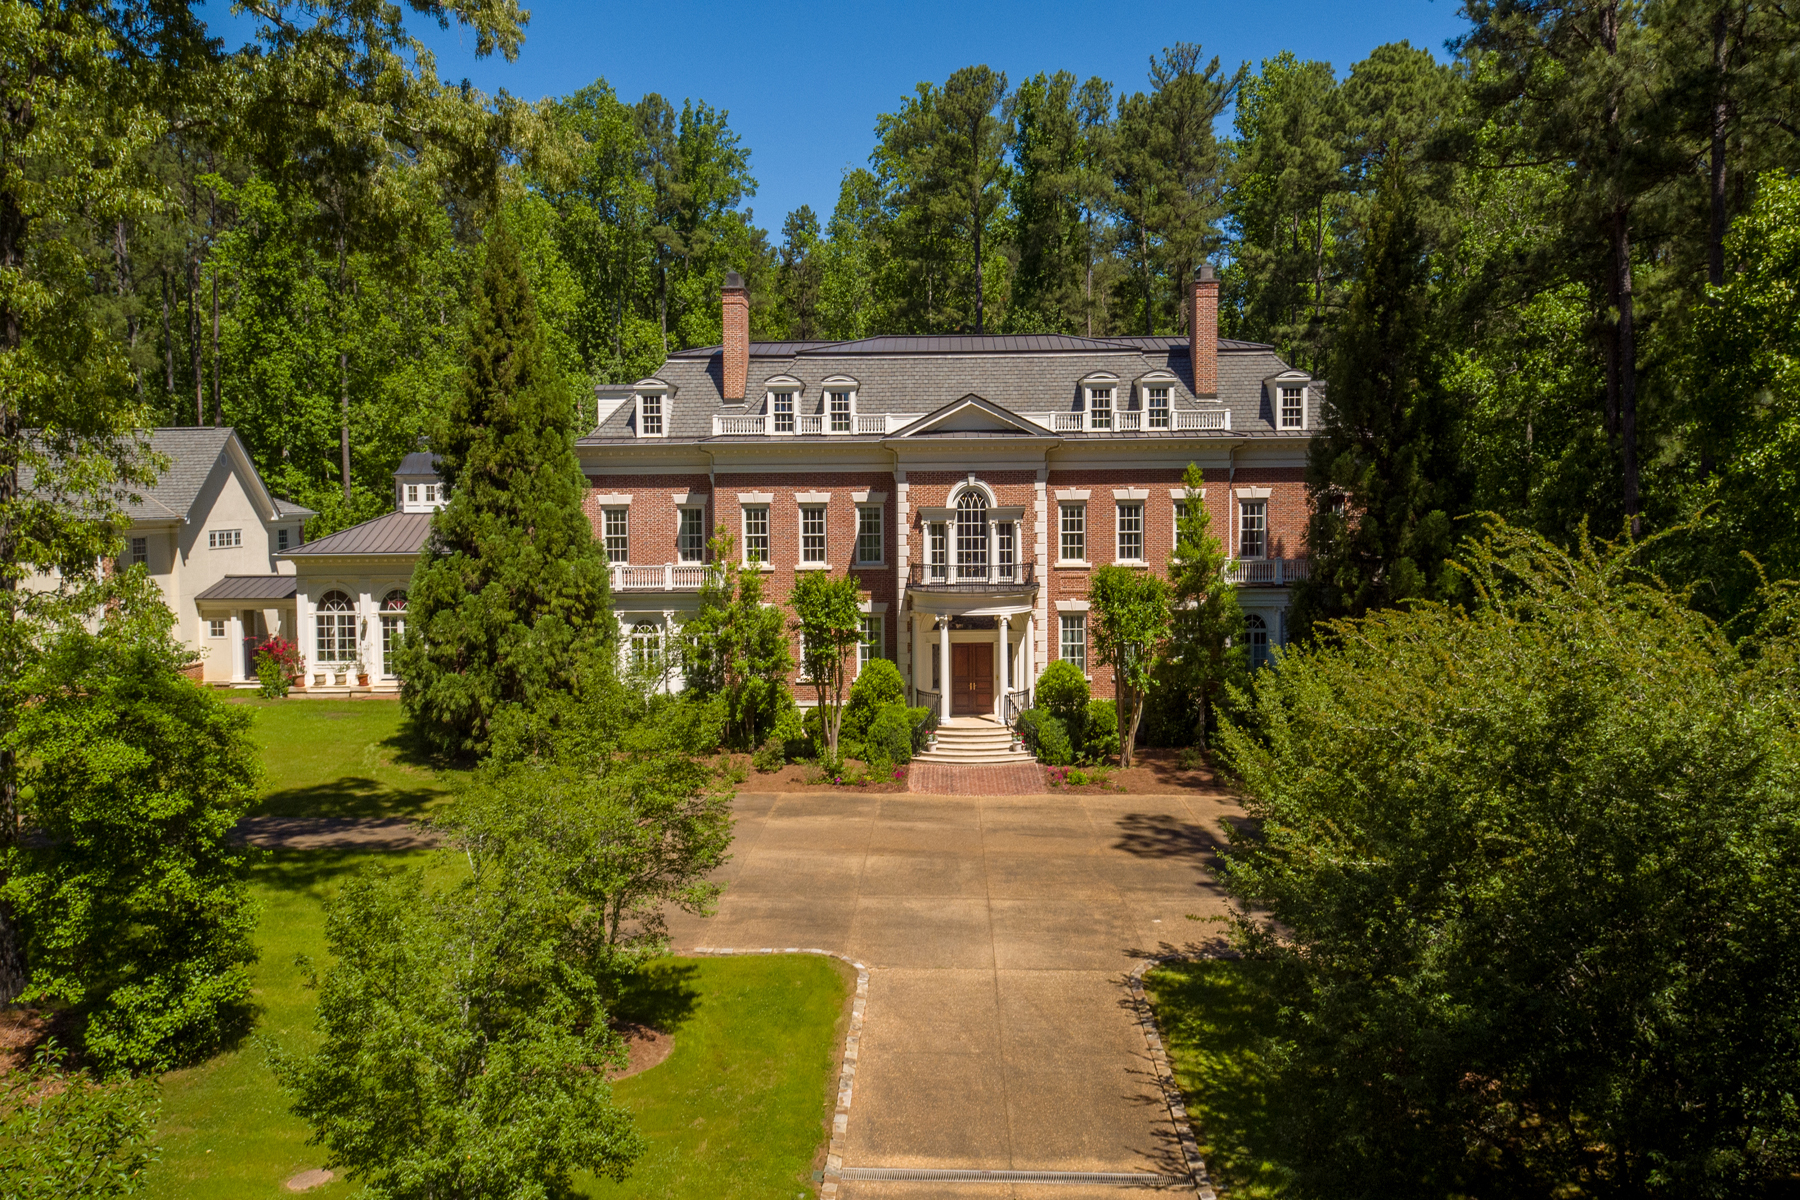 Частный односемейный дом для того Продажа на Exquisite Private Estate, Architectural Gem In Peachtree City 321 Loring Lane Peachtree City, Джорджия 30269 Соединенные Штаты